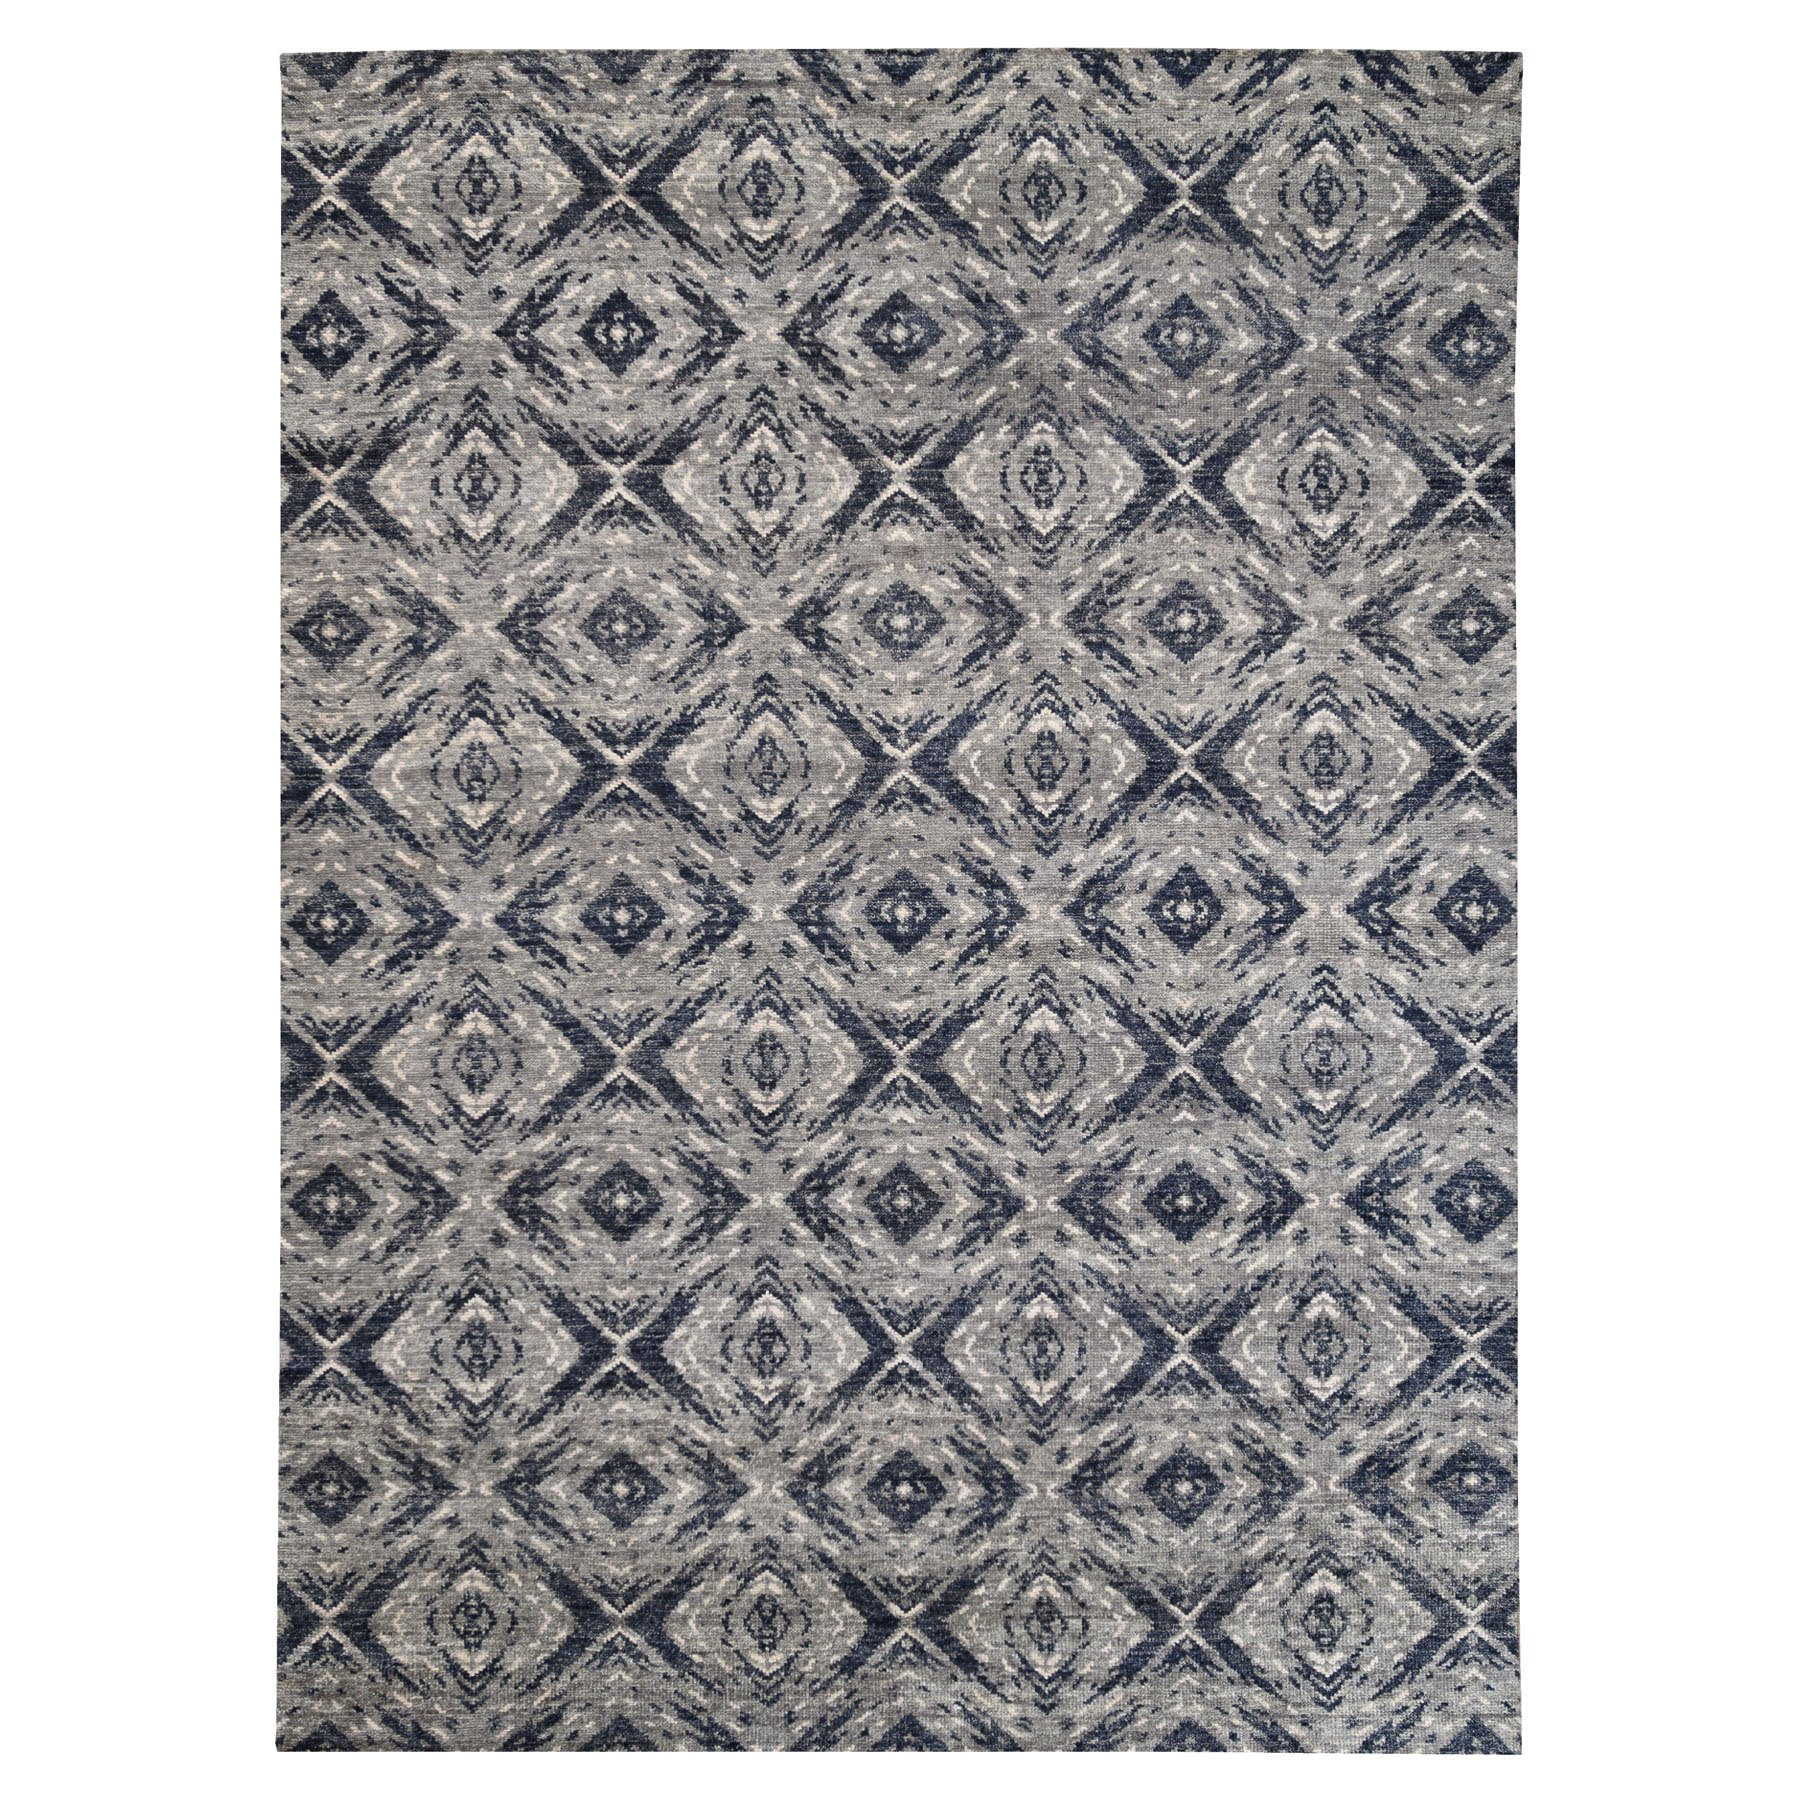 9'x12' Charcoal Black Supple Collection Modern All Over Square Design Erased Pure Wool Hand Knotted Oriental Rug